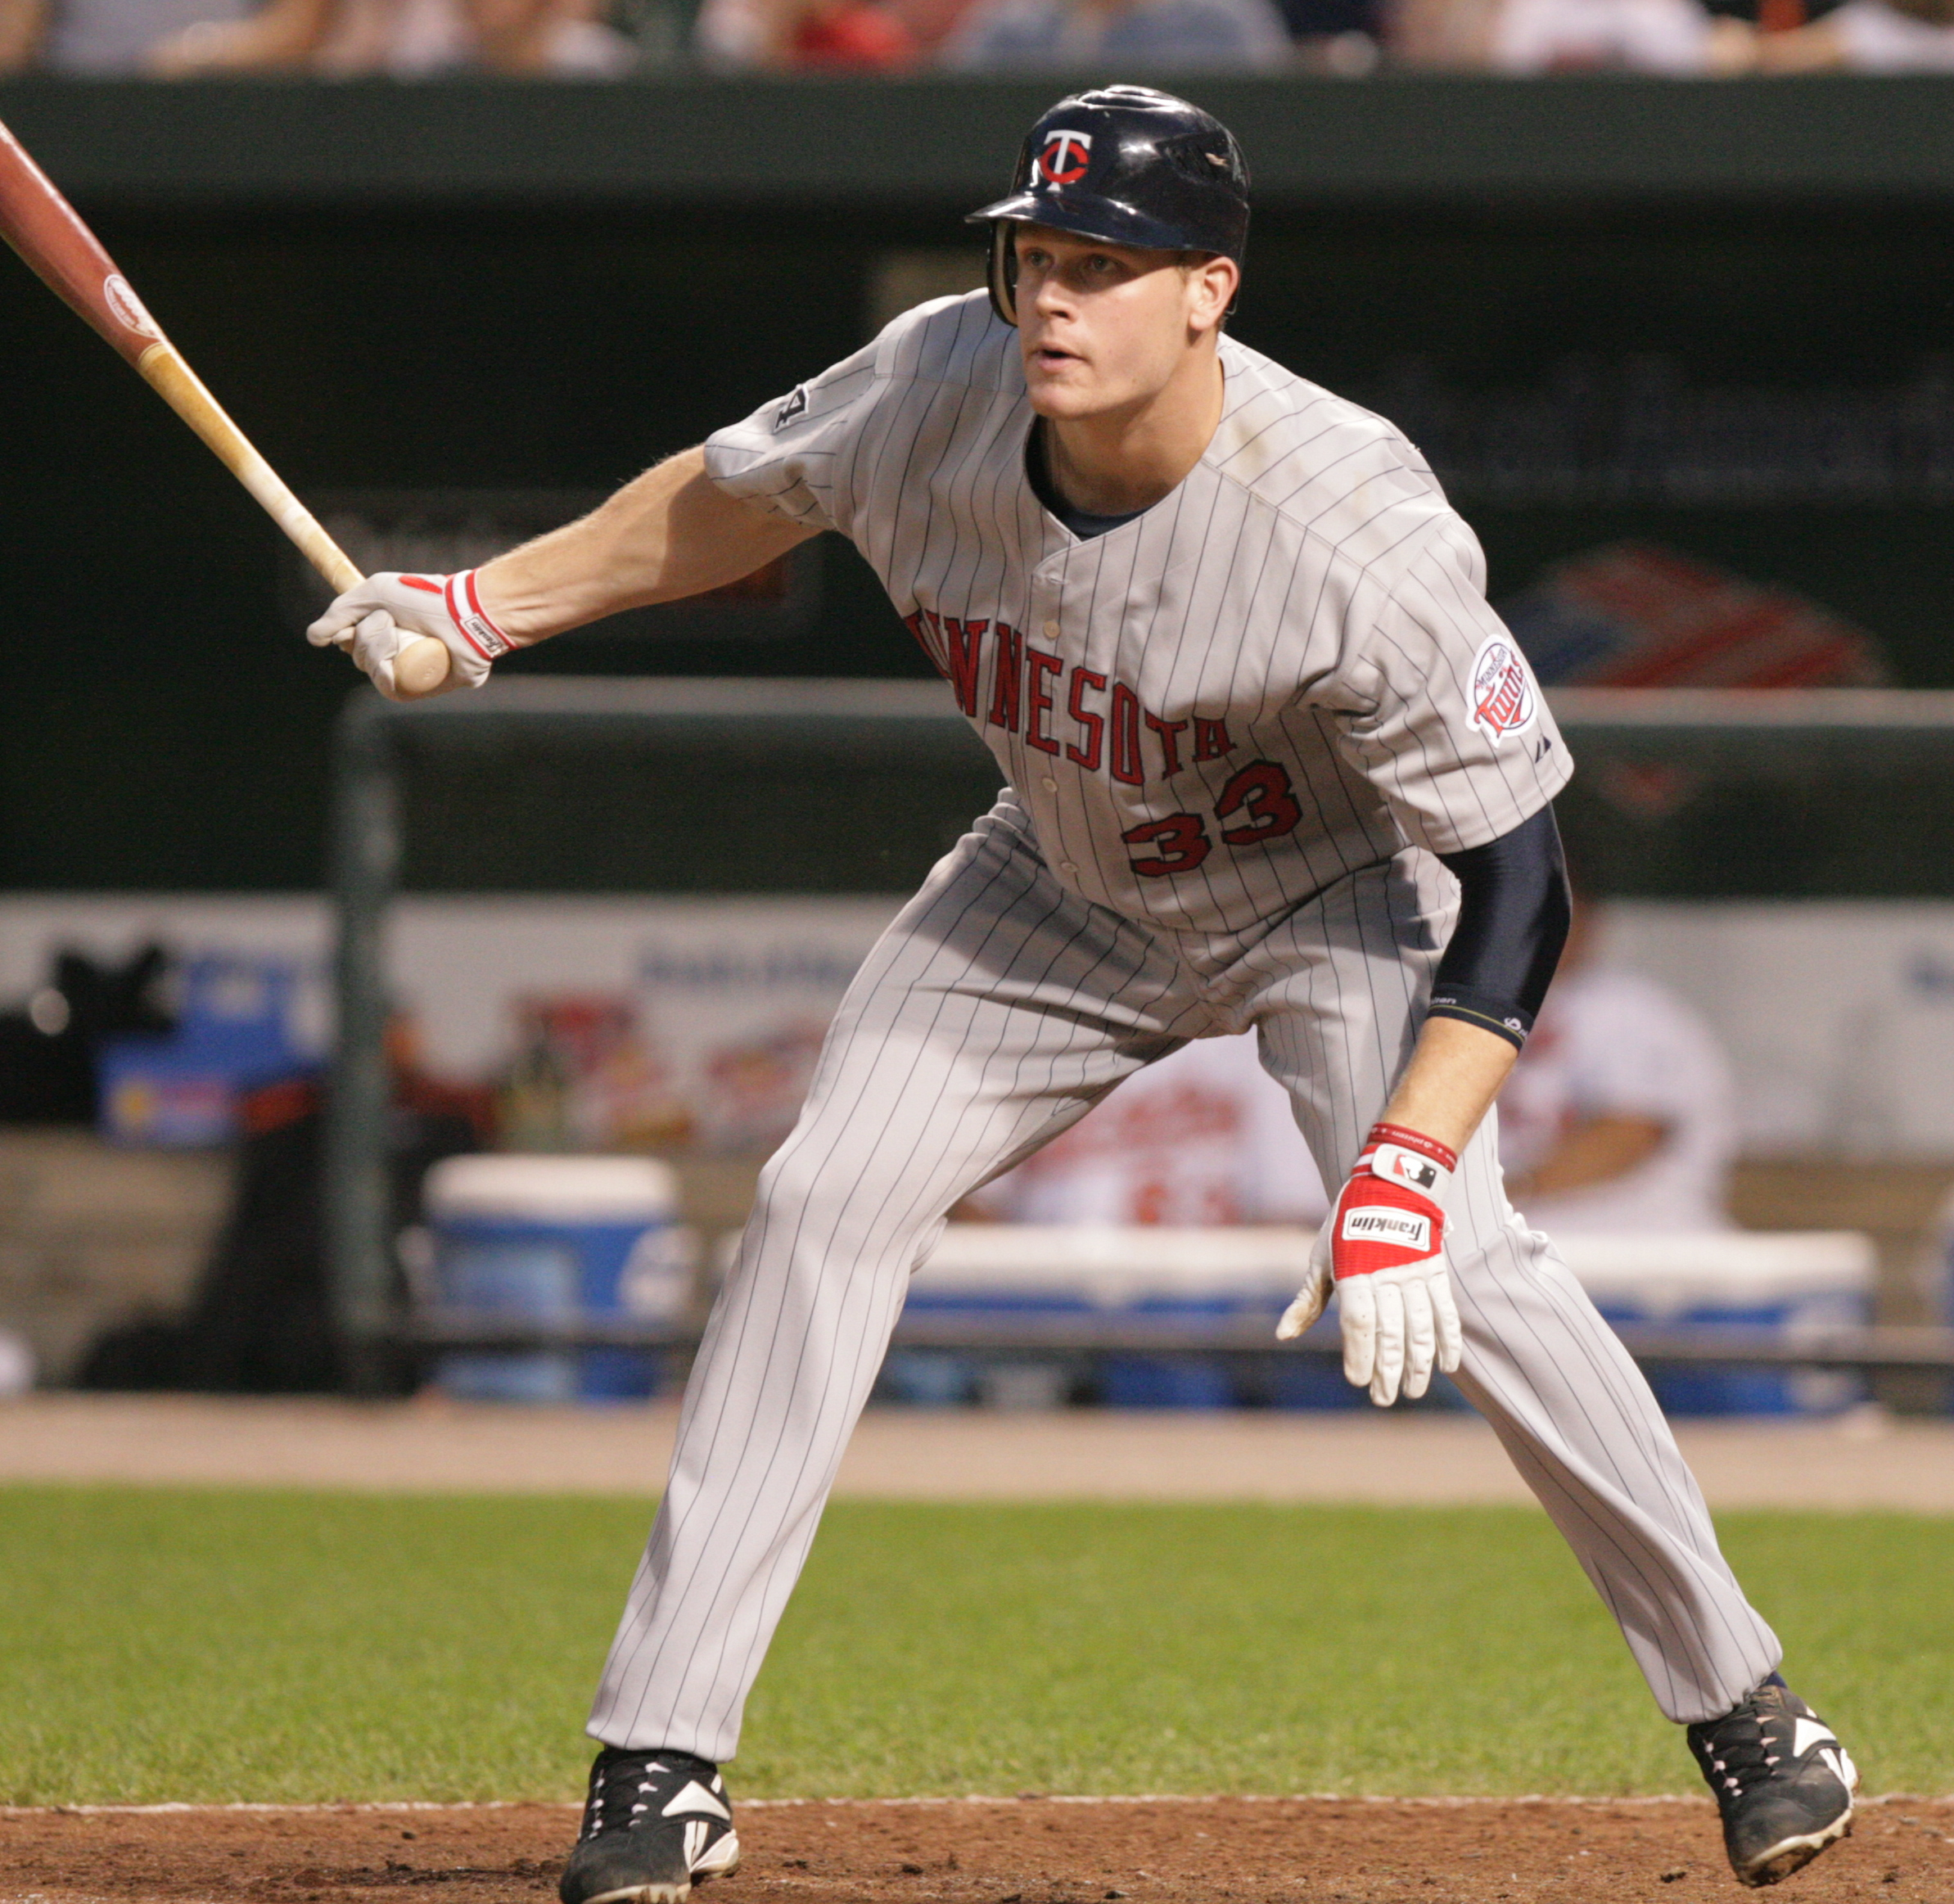 The 37-year old son of father (?) and mother(?) Justin Morneau in 2019 photo. Justin Morneau earned a  million dollar salary - leaving the net worth at 7.25 million in 2019